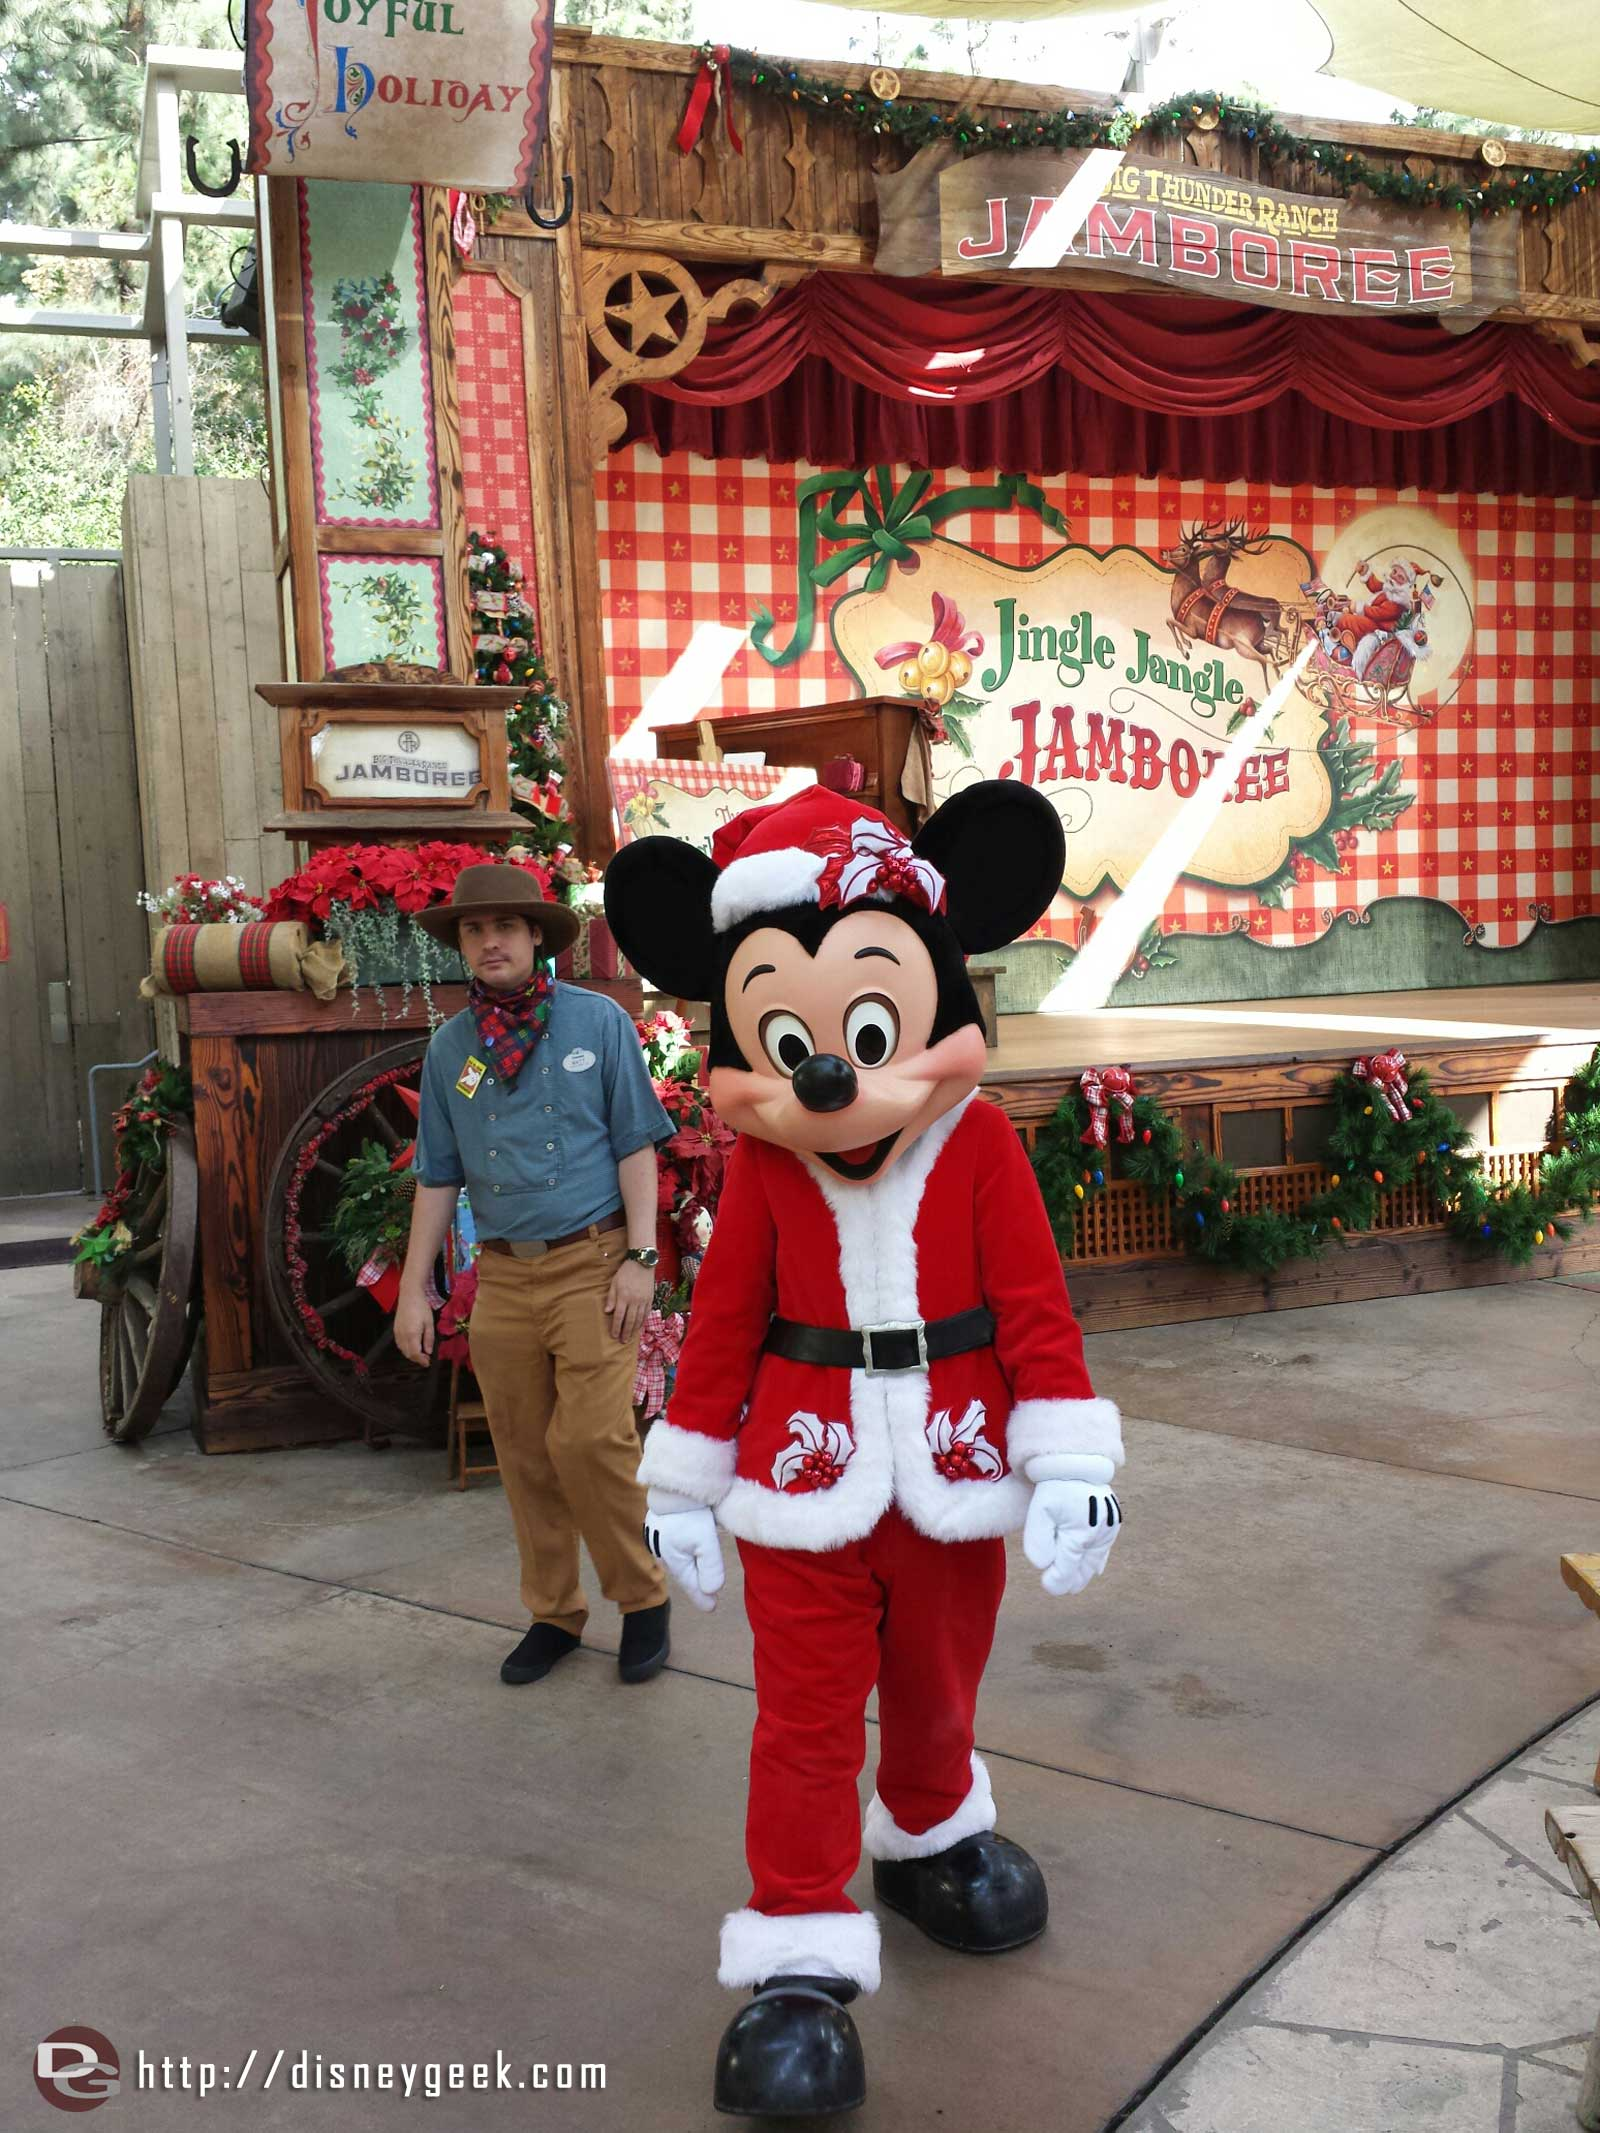 Mickey in his Christmas costume walking around the Jingle Jangle Jamboree #Disneyland